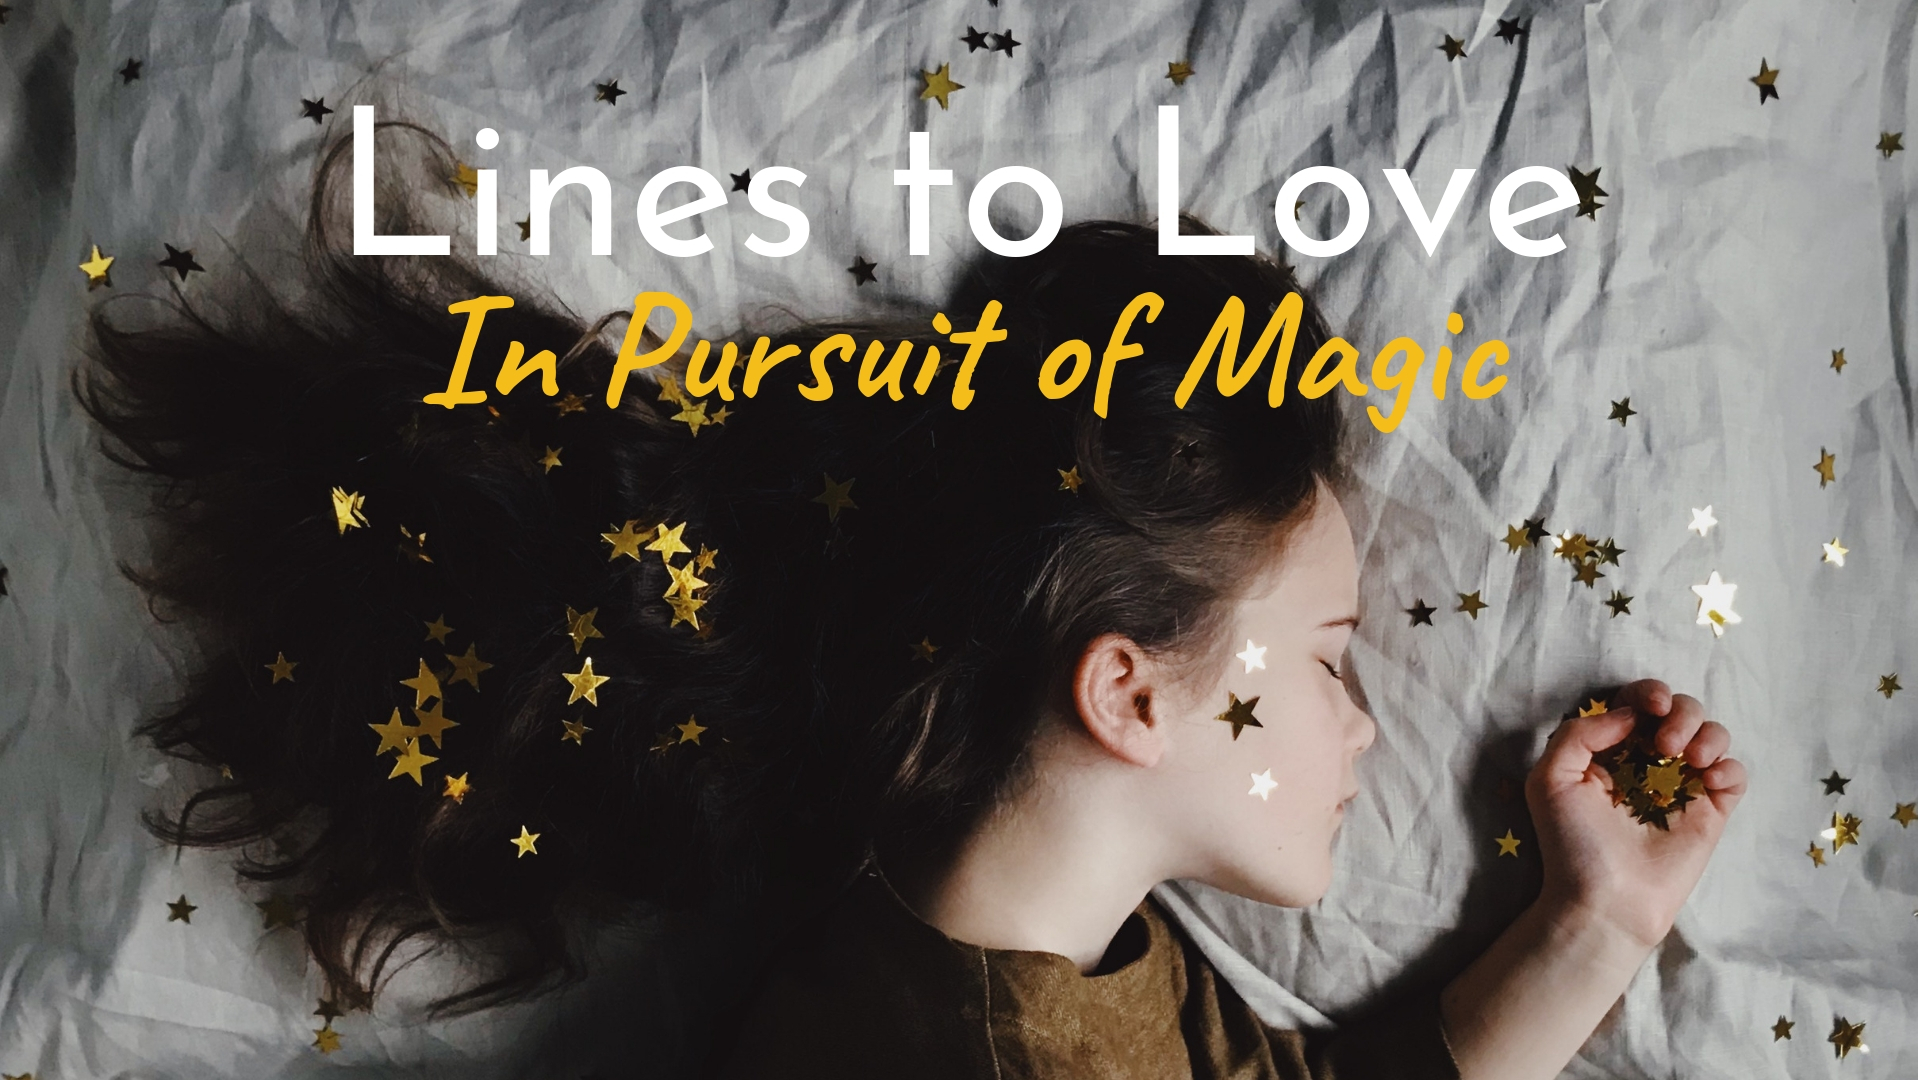 banner-lines-to-love-in-pursuit-of-magic-01.jpg